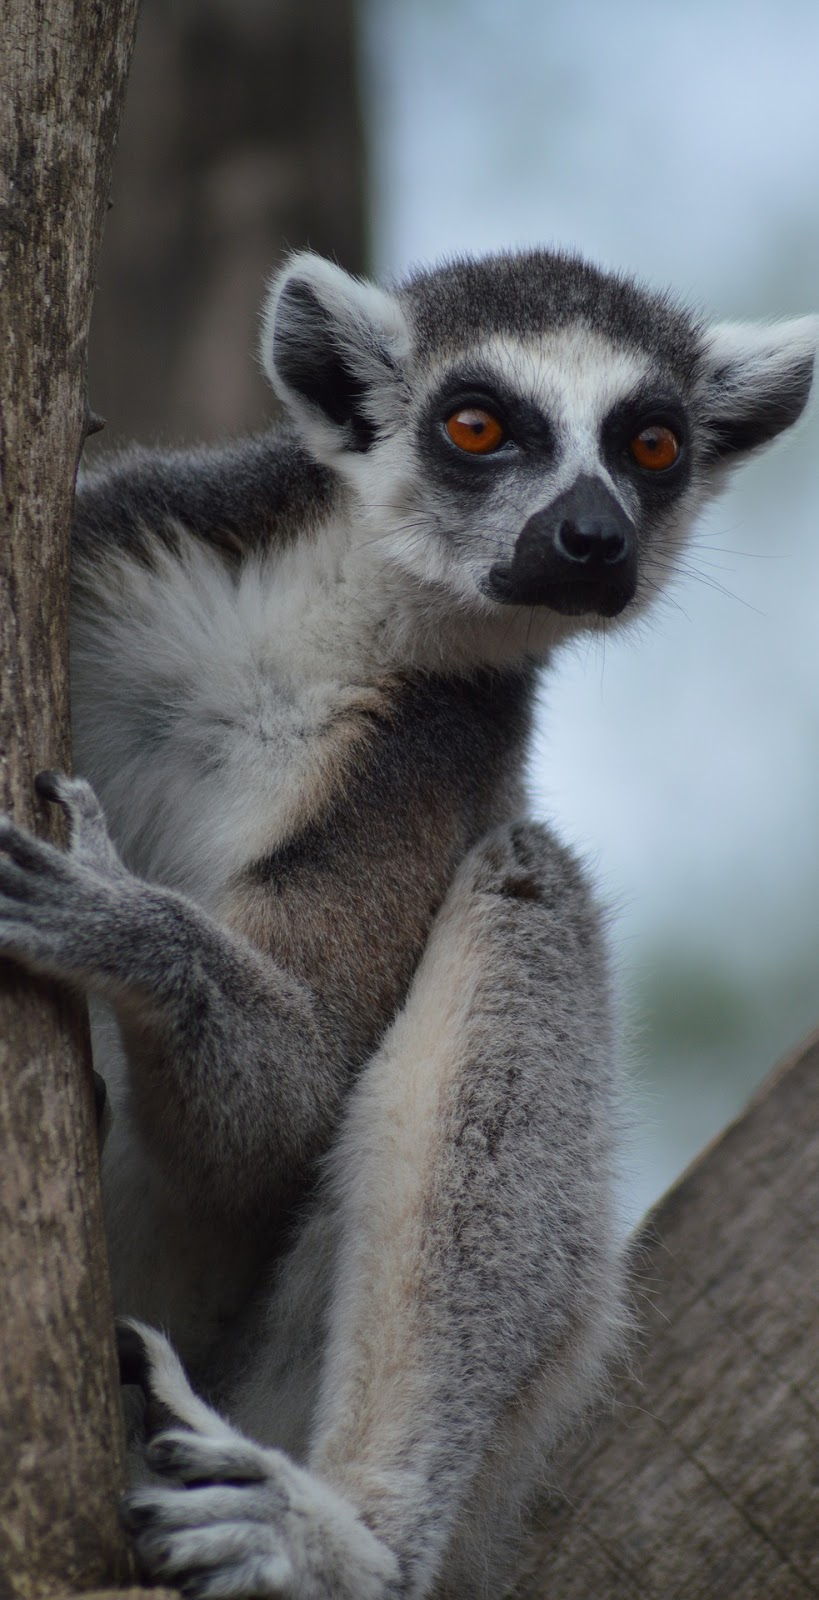 A lemur on tree.